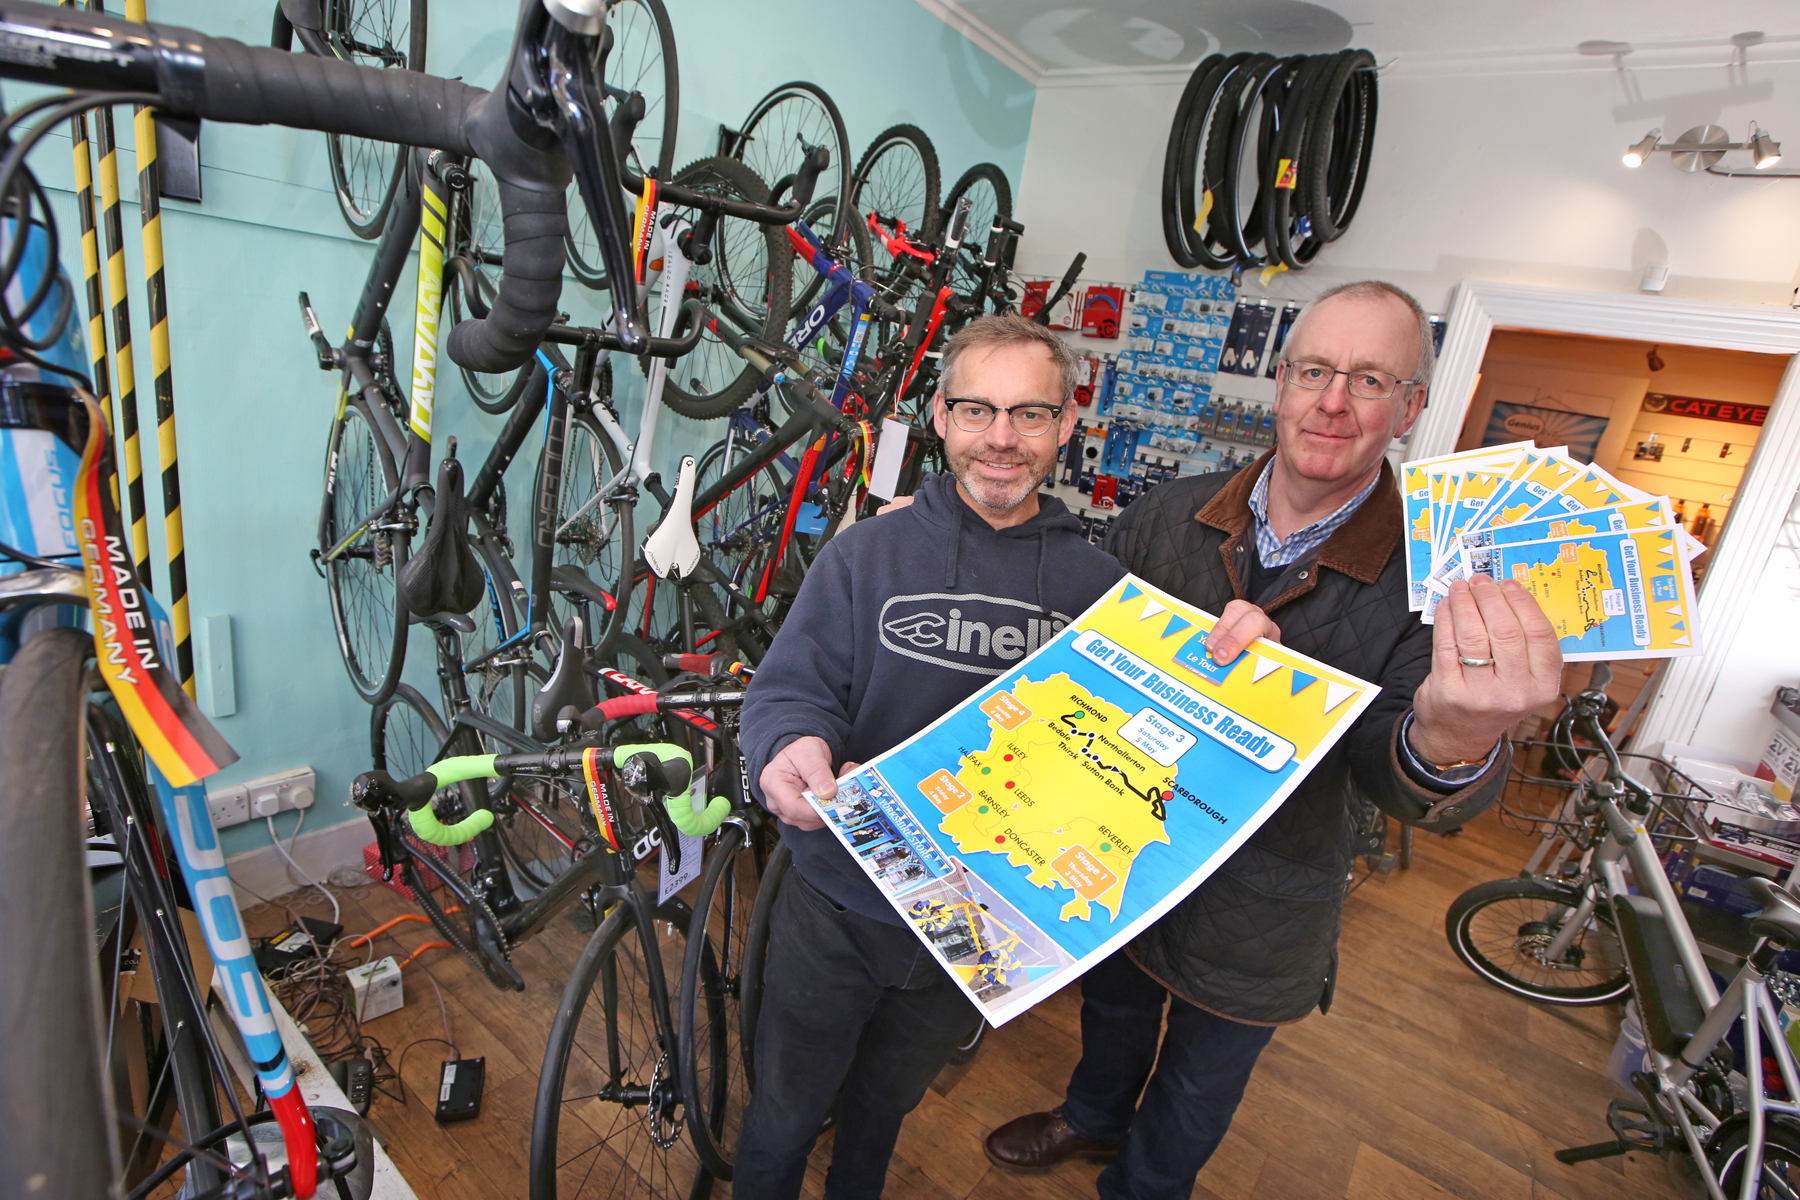 Venture Cycles, Thirsk, owner Iaen Bell, who is pictured with District Council Leader, Councillor Mark Robson.